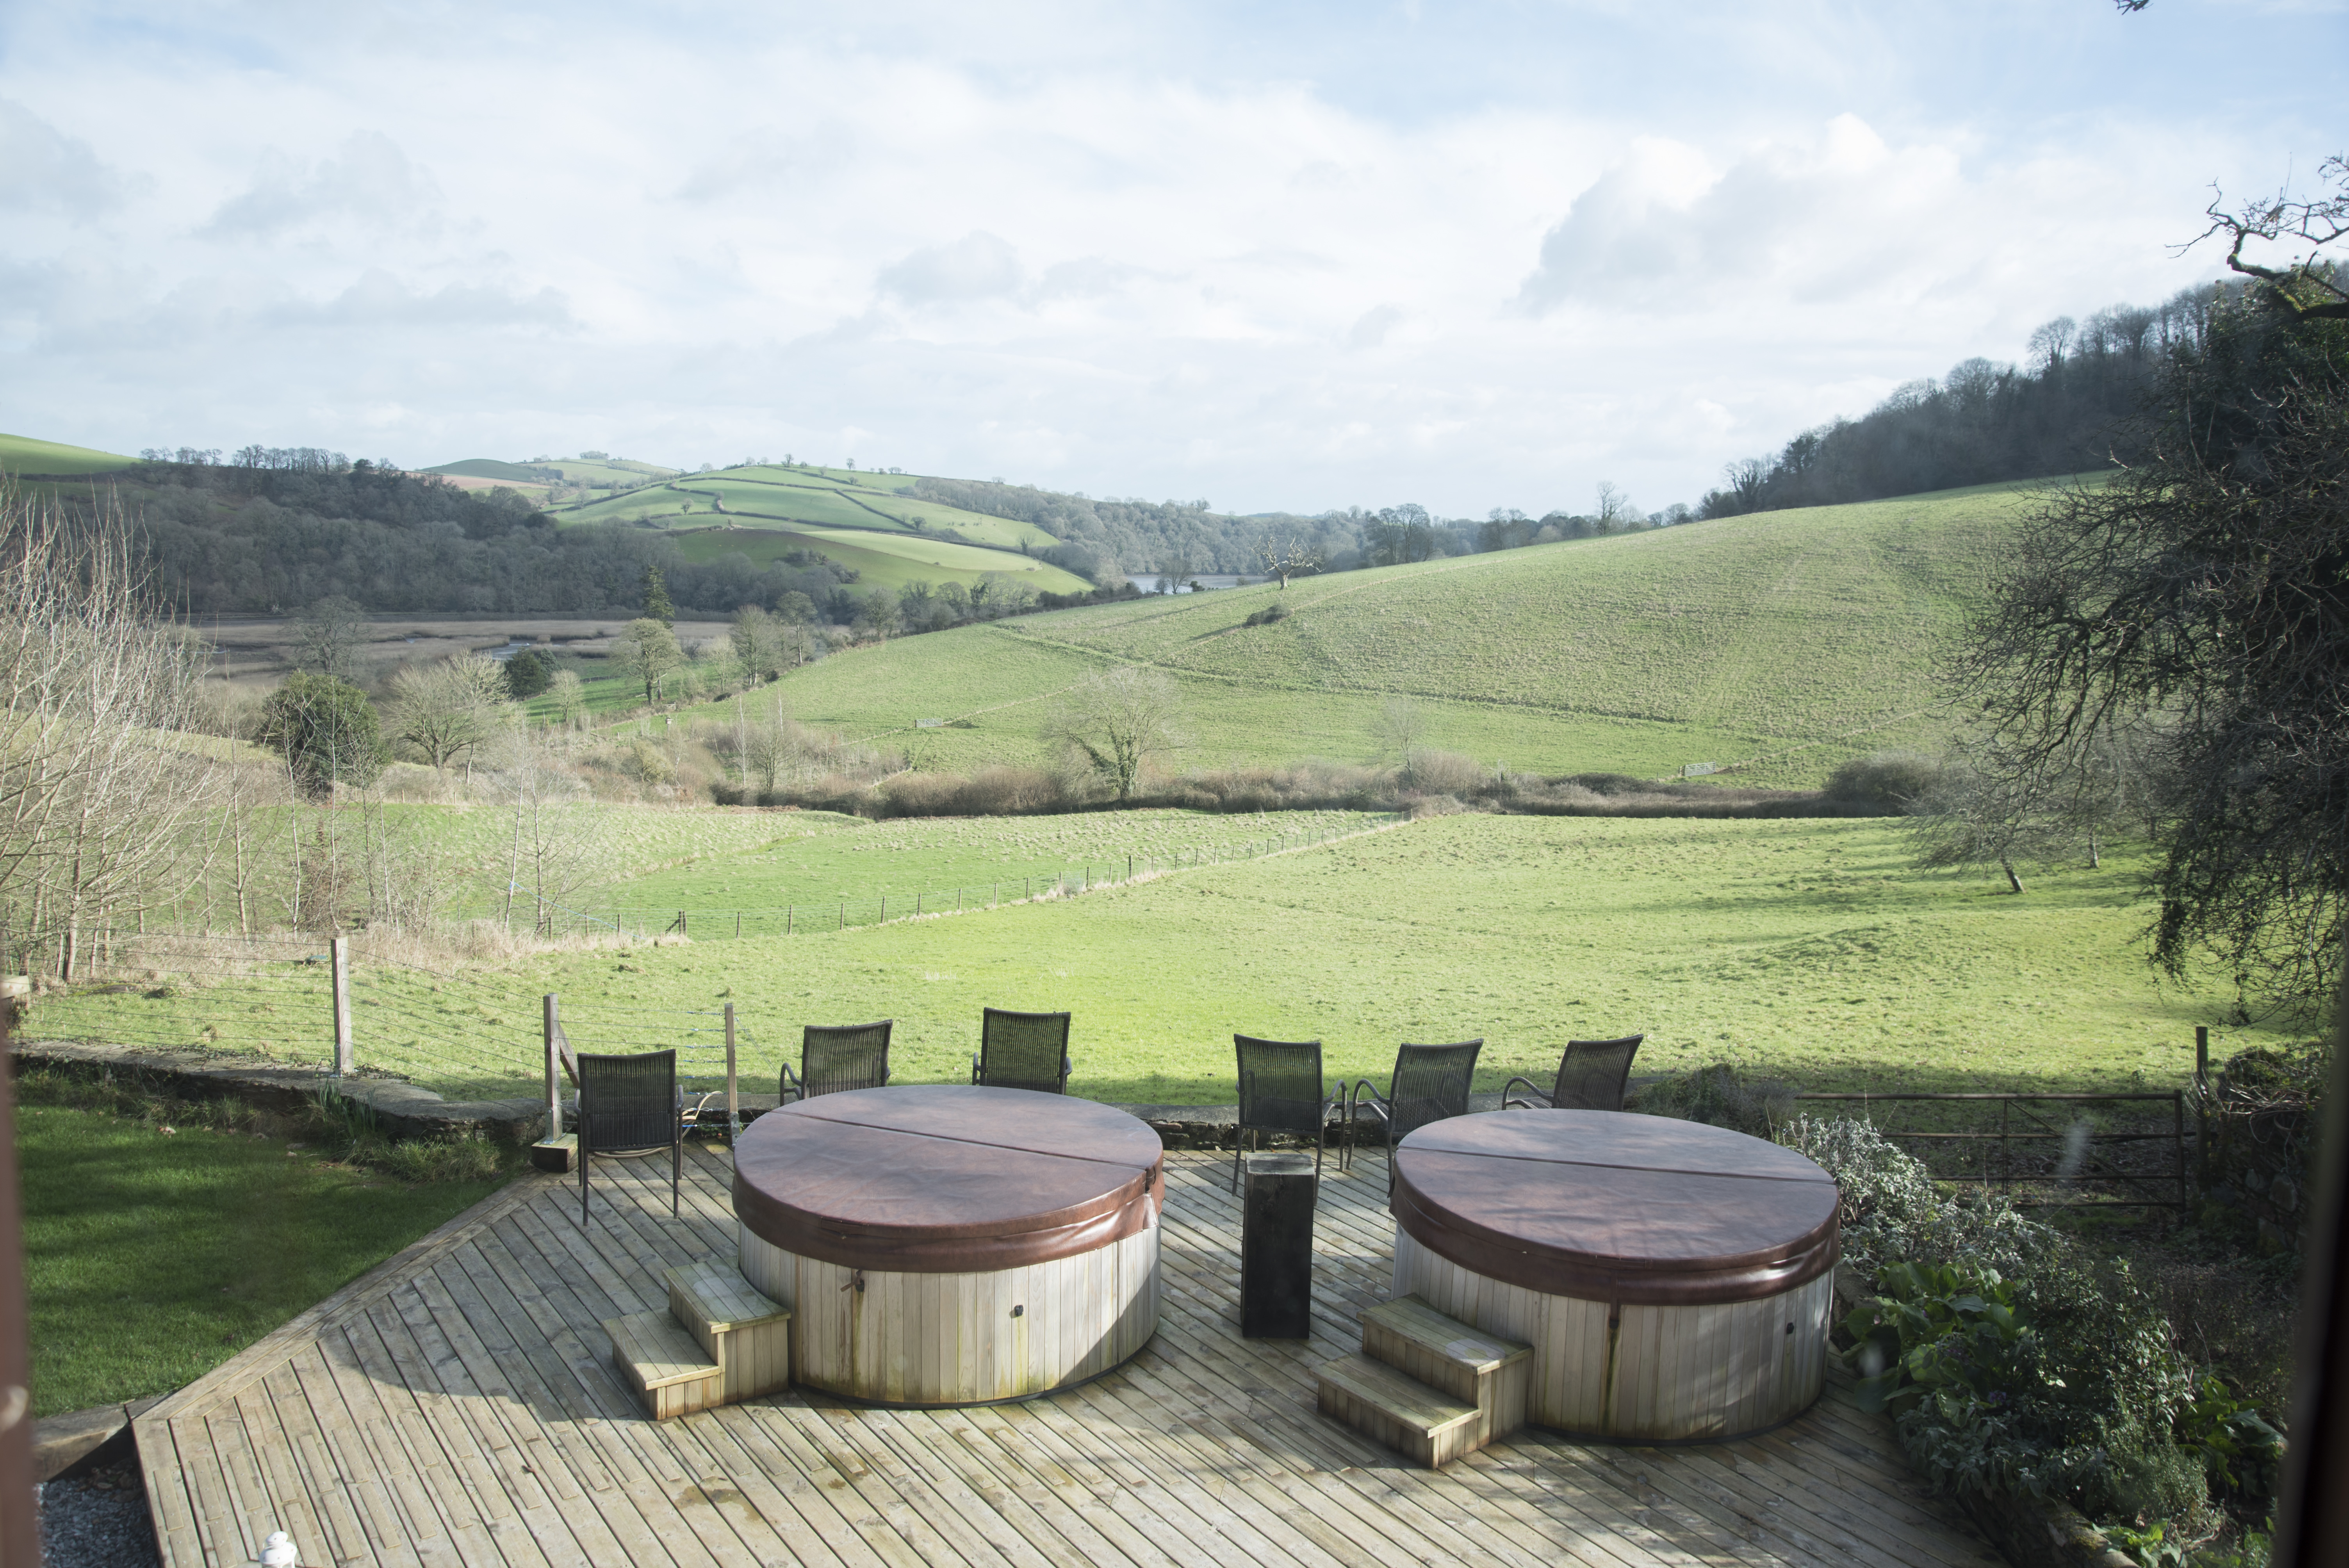 Hot tubs, Devon hills, The Shippon, Sewing retreat